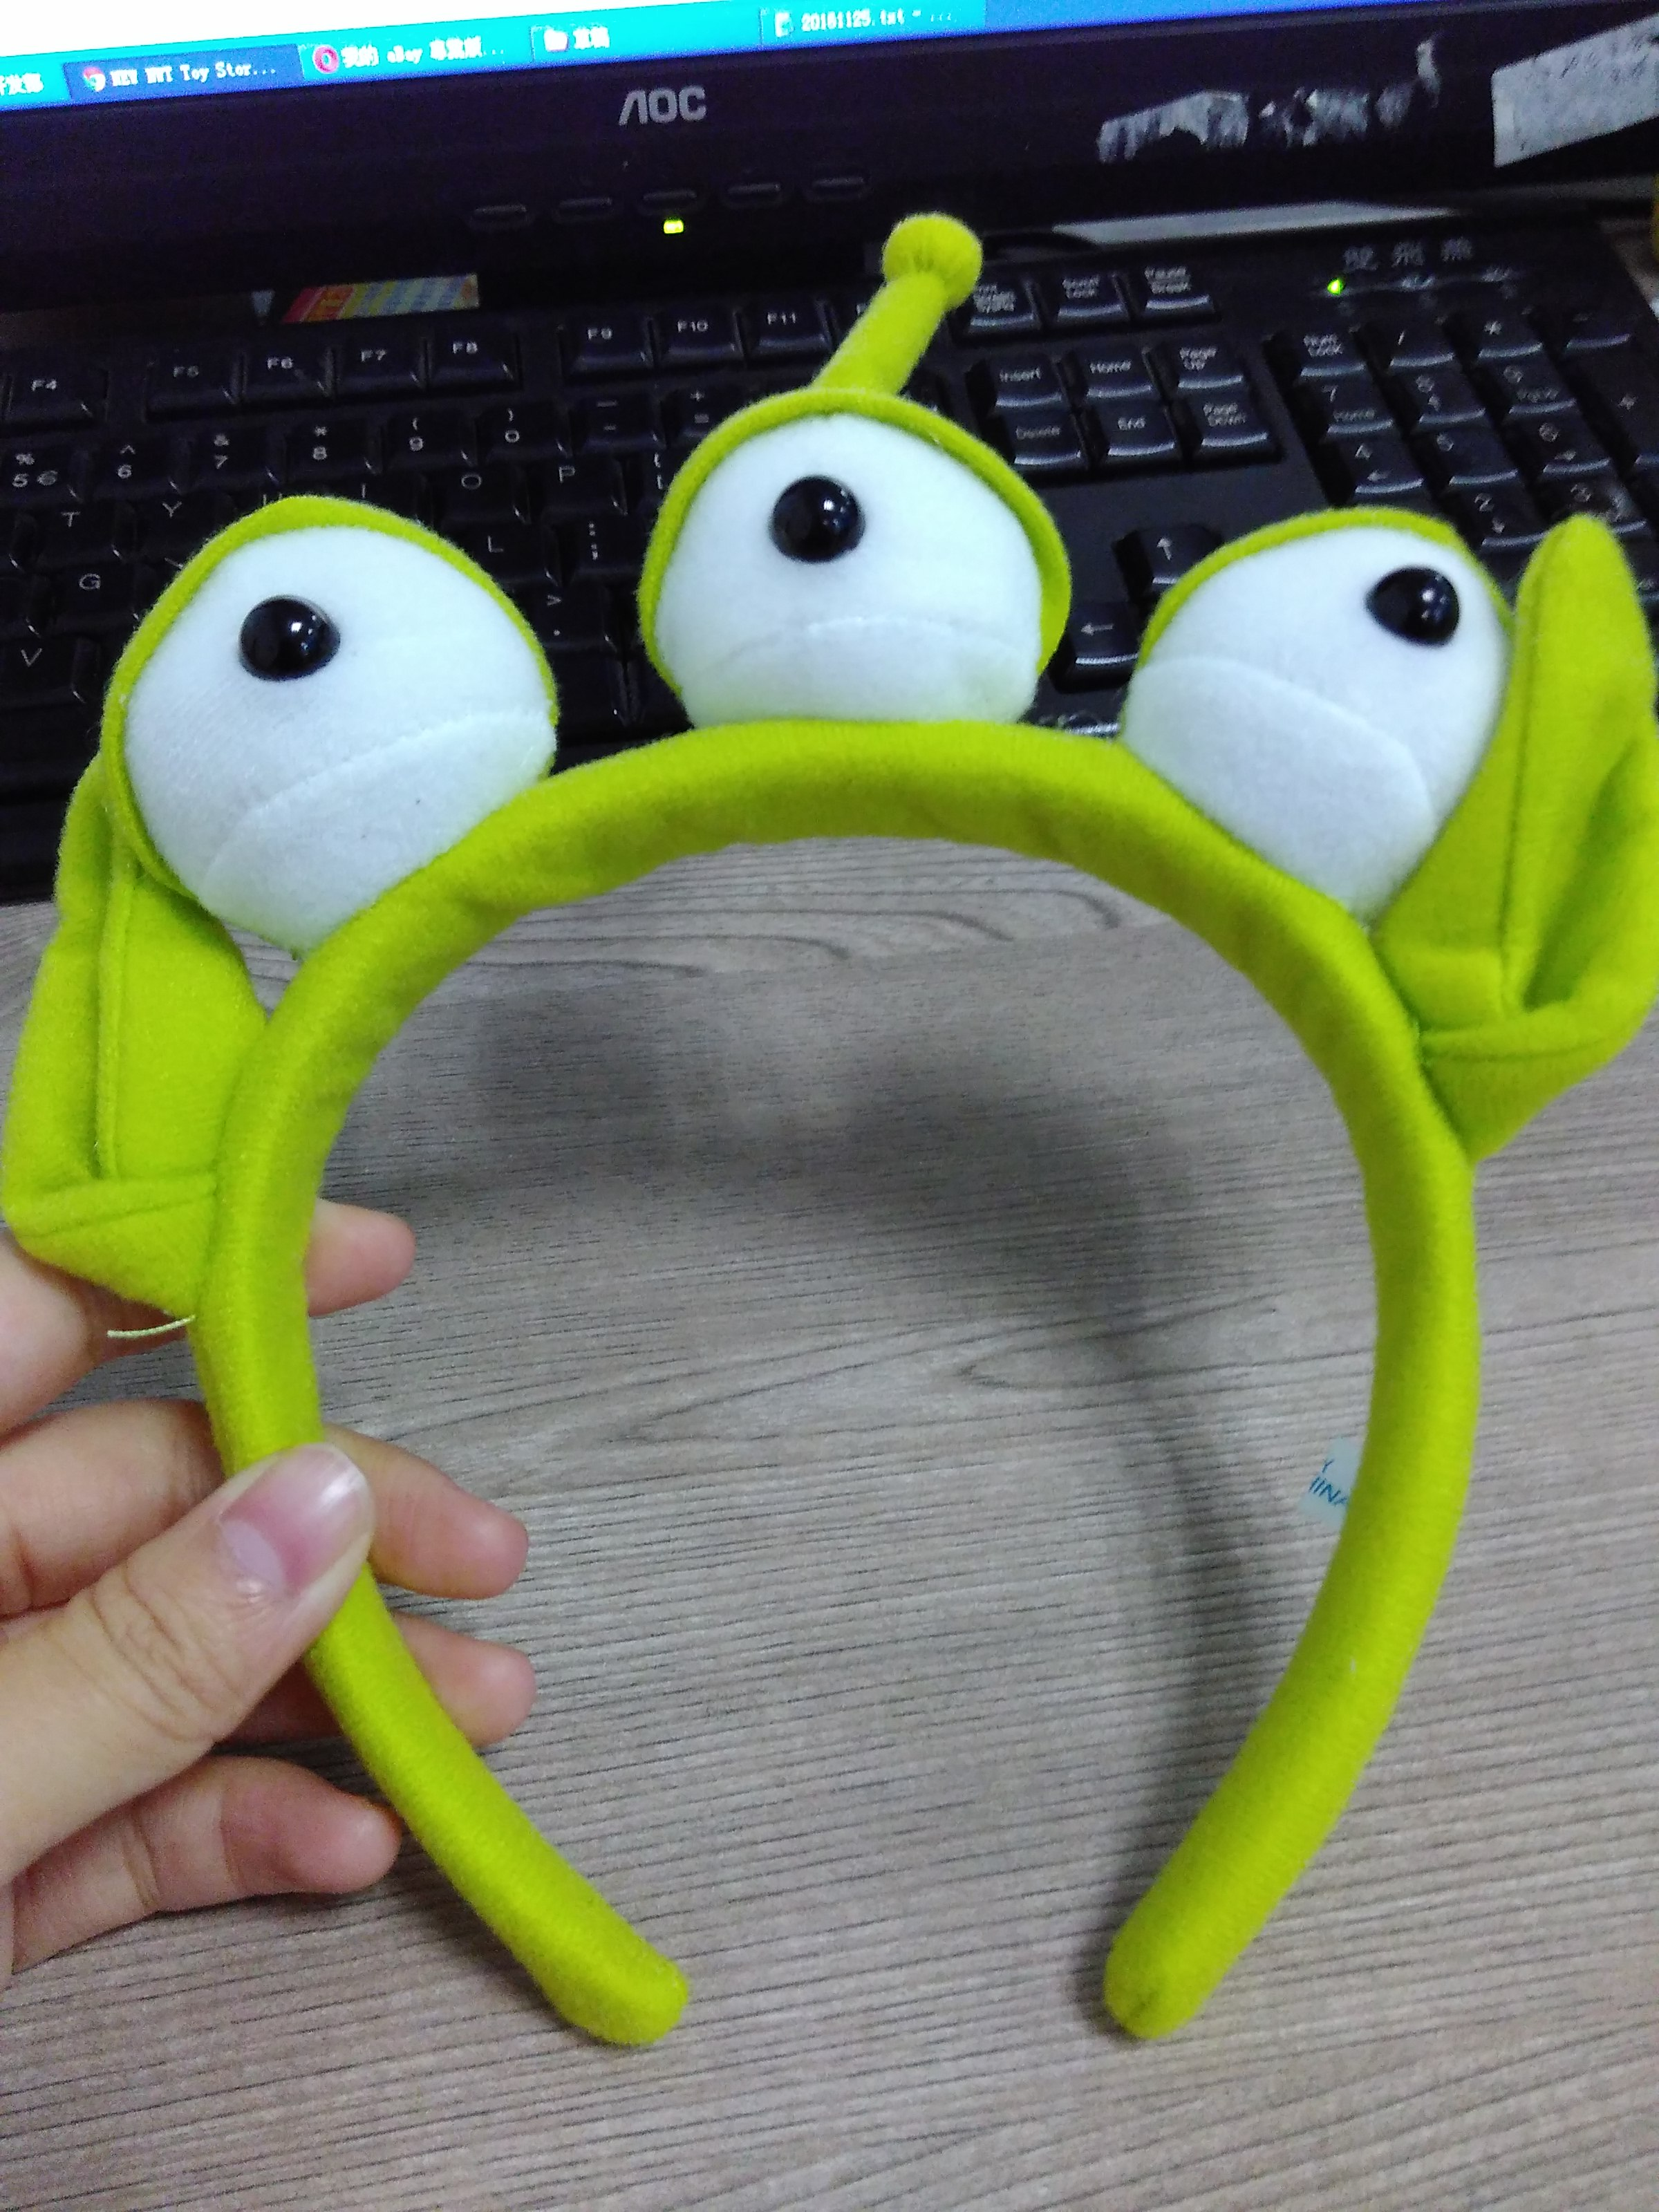 New Nwt Toy Story Alien Ears Anime Plush Headband Adult